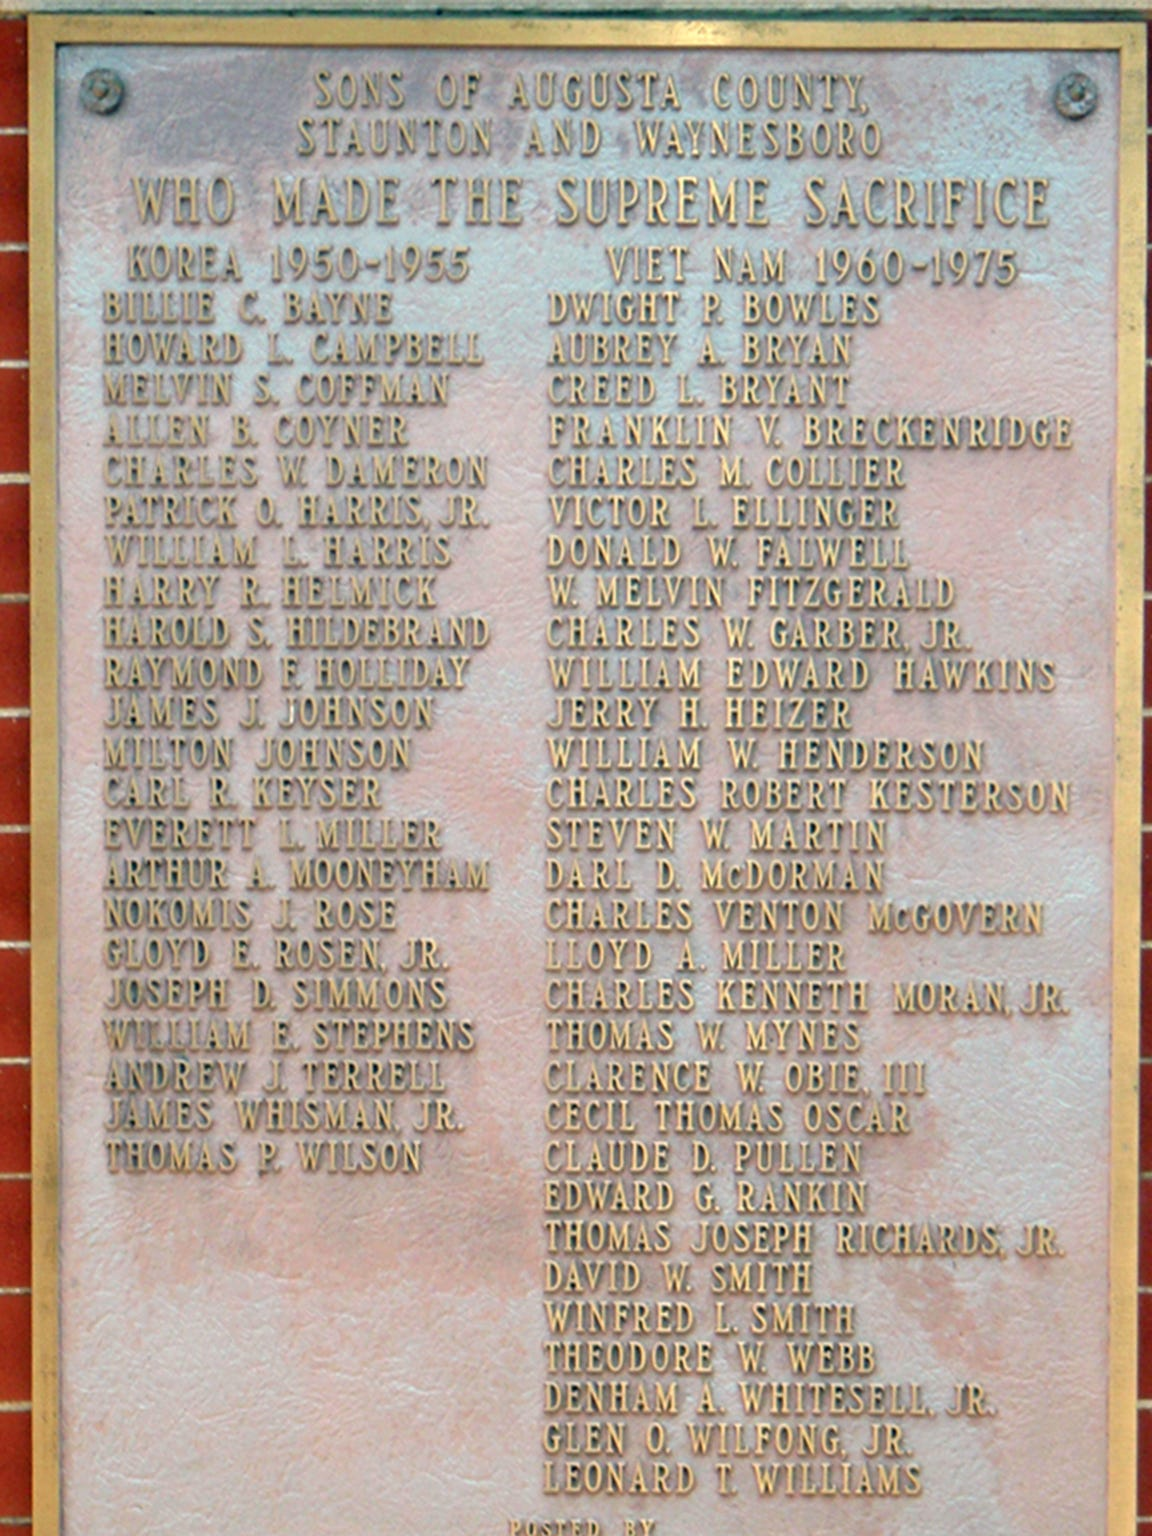 Best friends Bo Obie and Lin Williams are together for eternity on the plaque at the Augusta County Courthouse honoring service personnel who died in the Korean and Vietnam Wars.